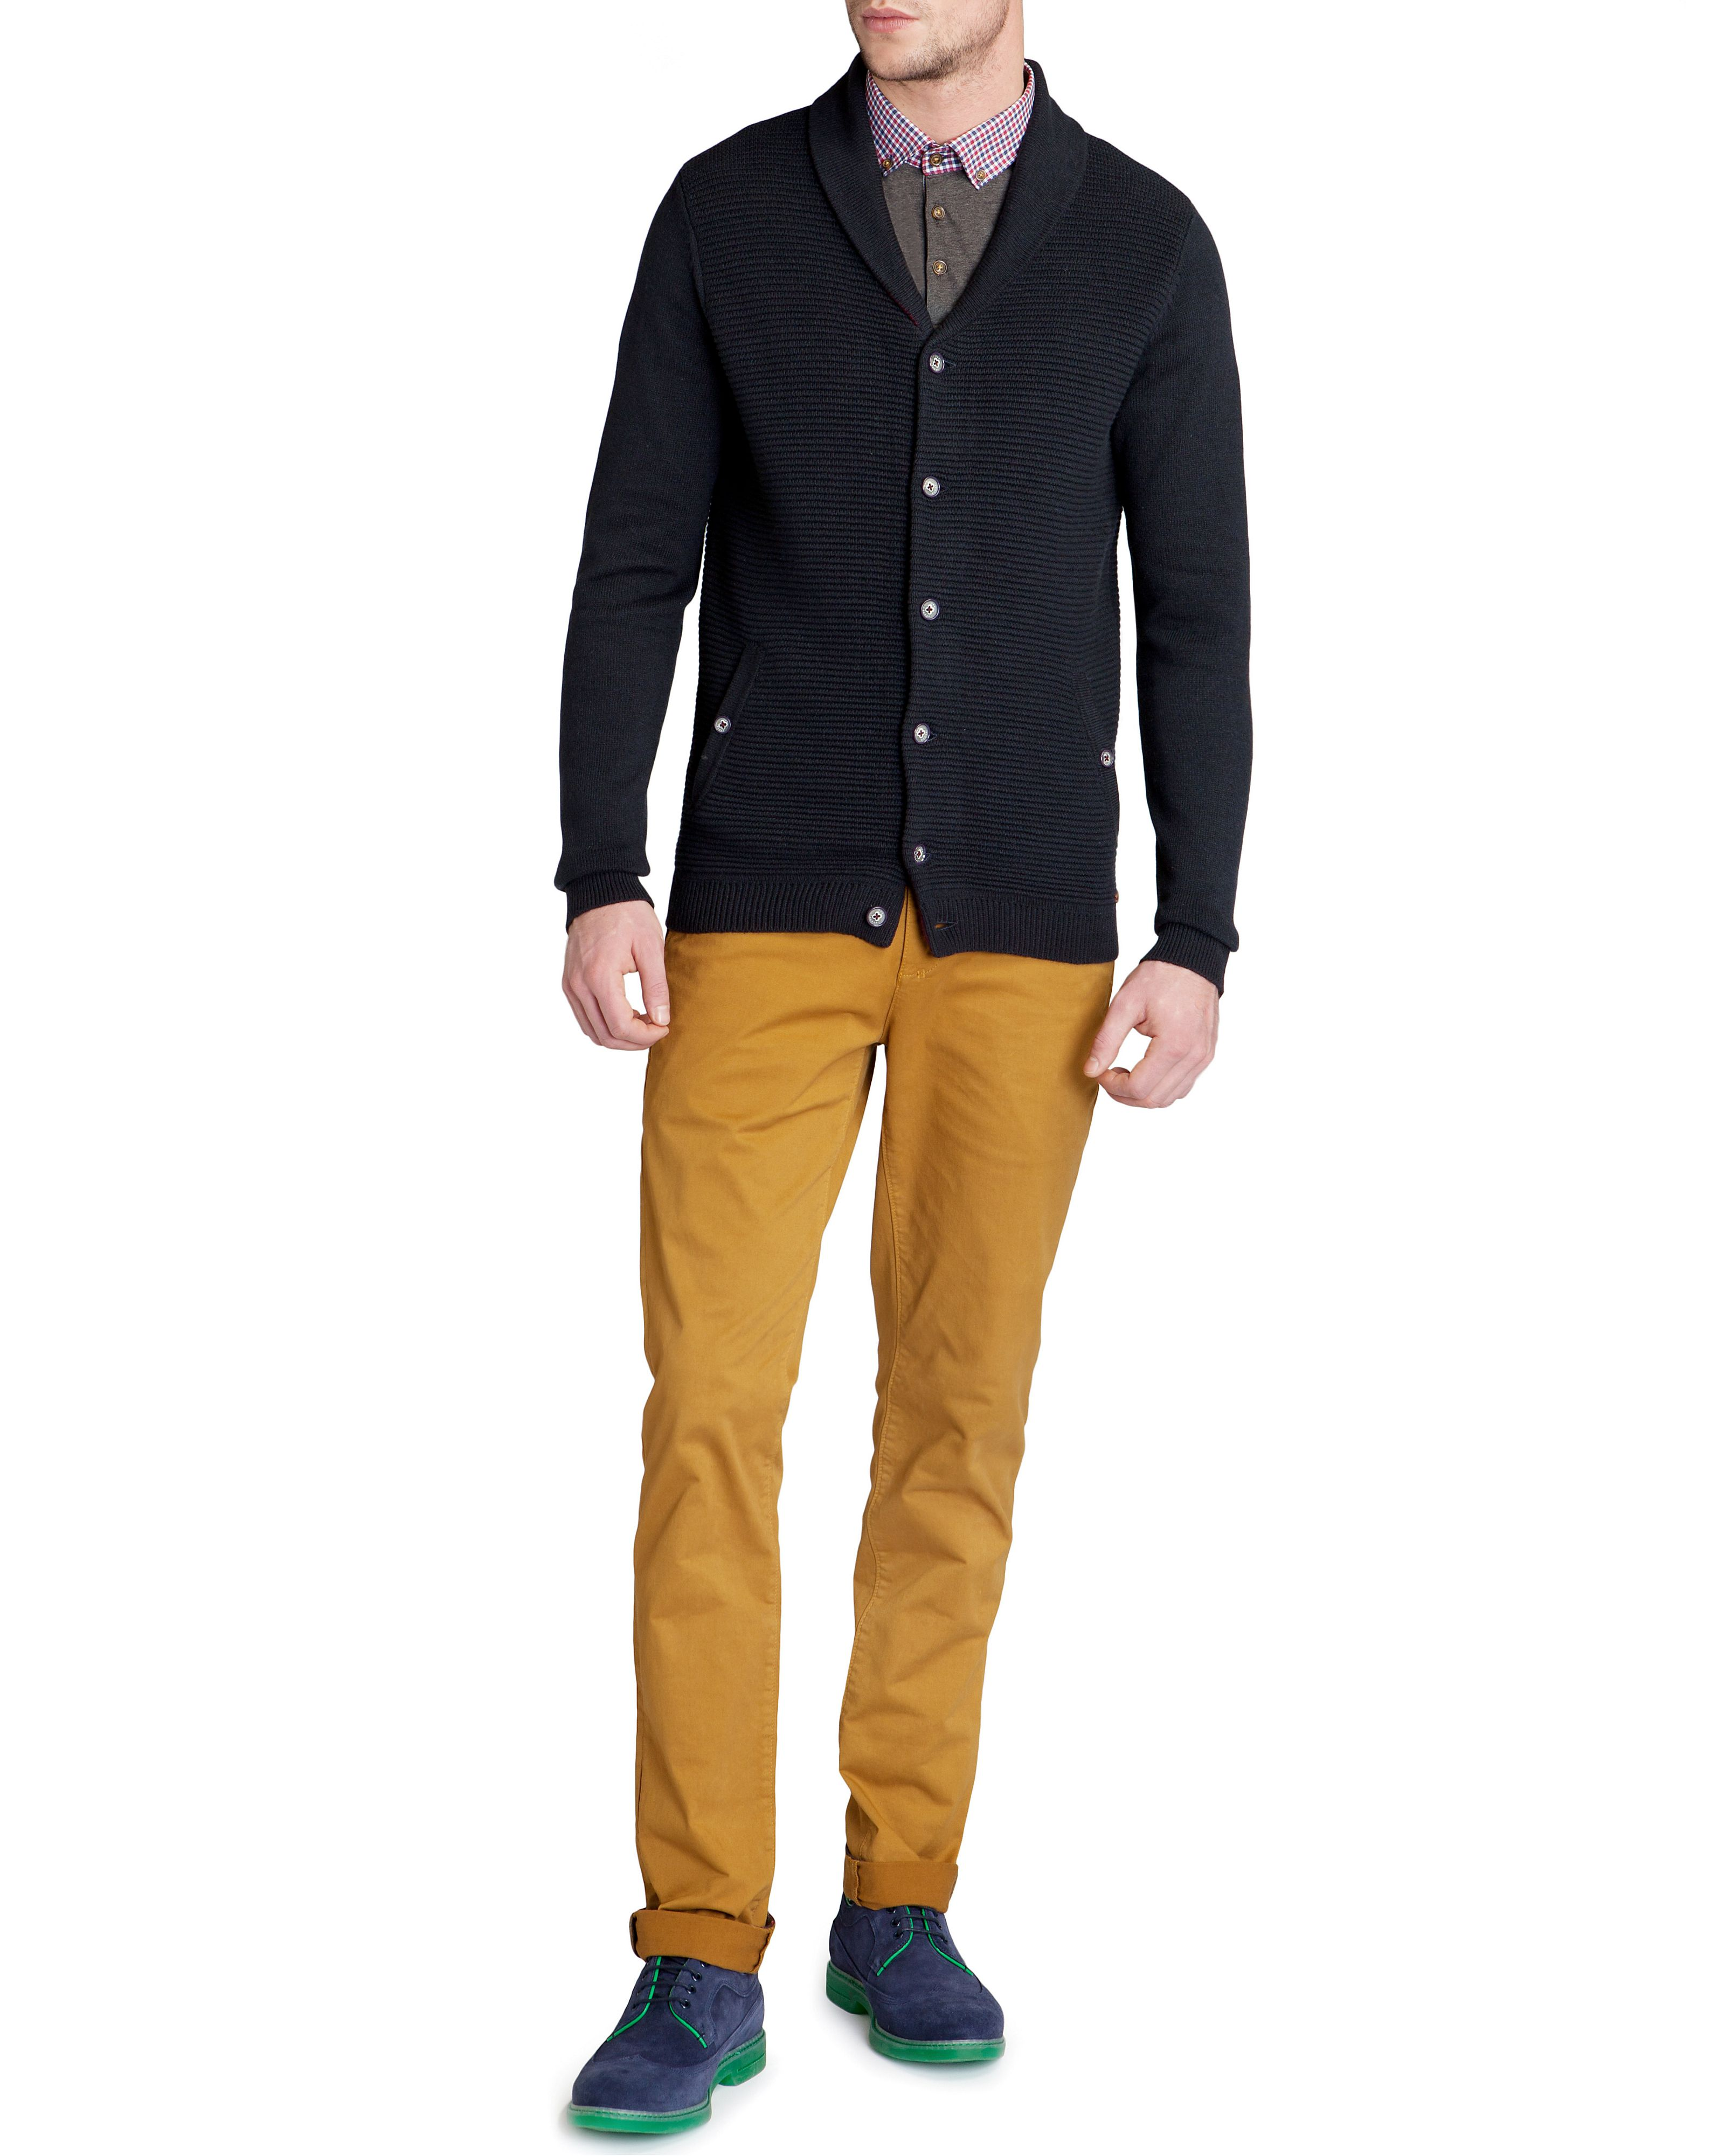 Emple shawl neck cardigan